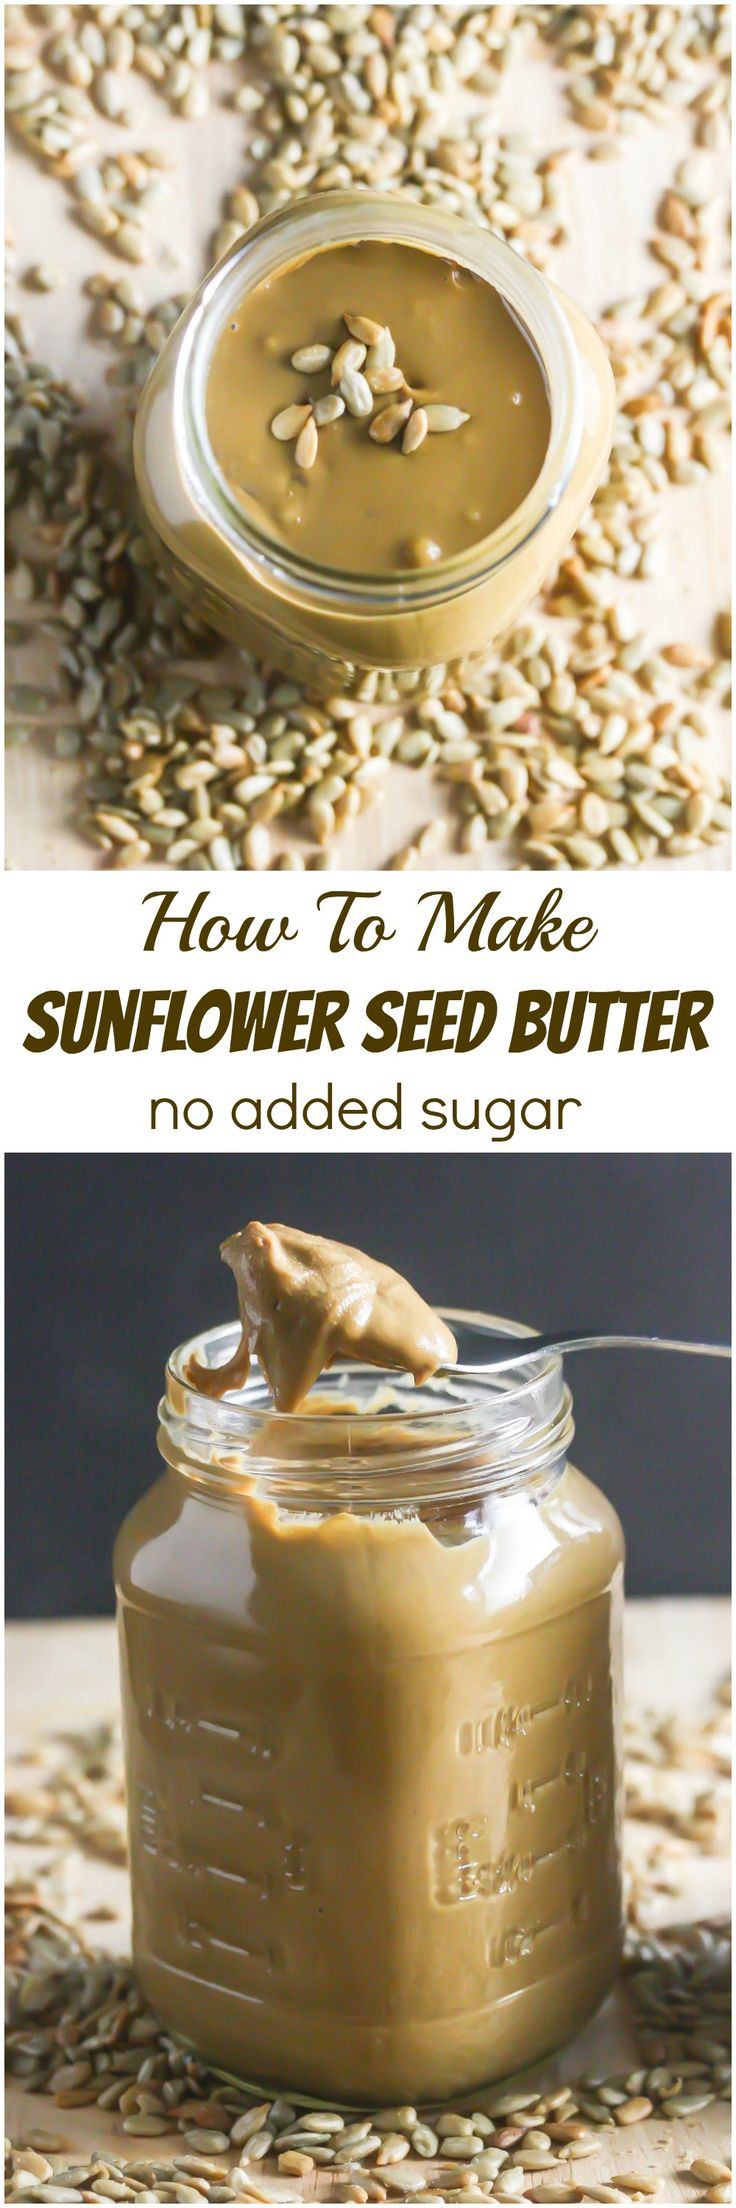 Homemade Sunflower Seed Butter is so easy to make and this one has no added sugar! http://www.laurenkellynutrition.com